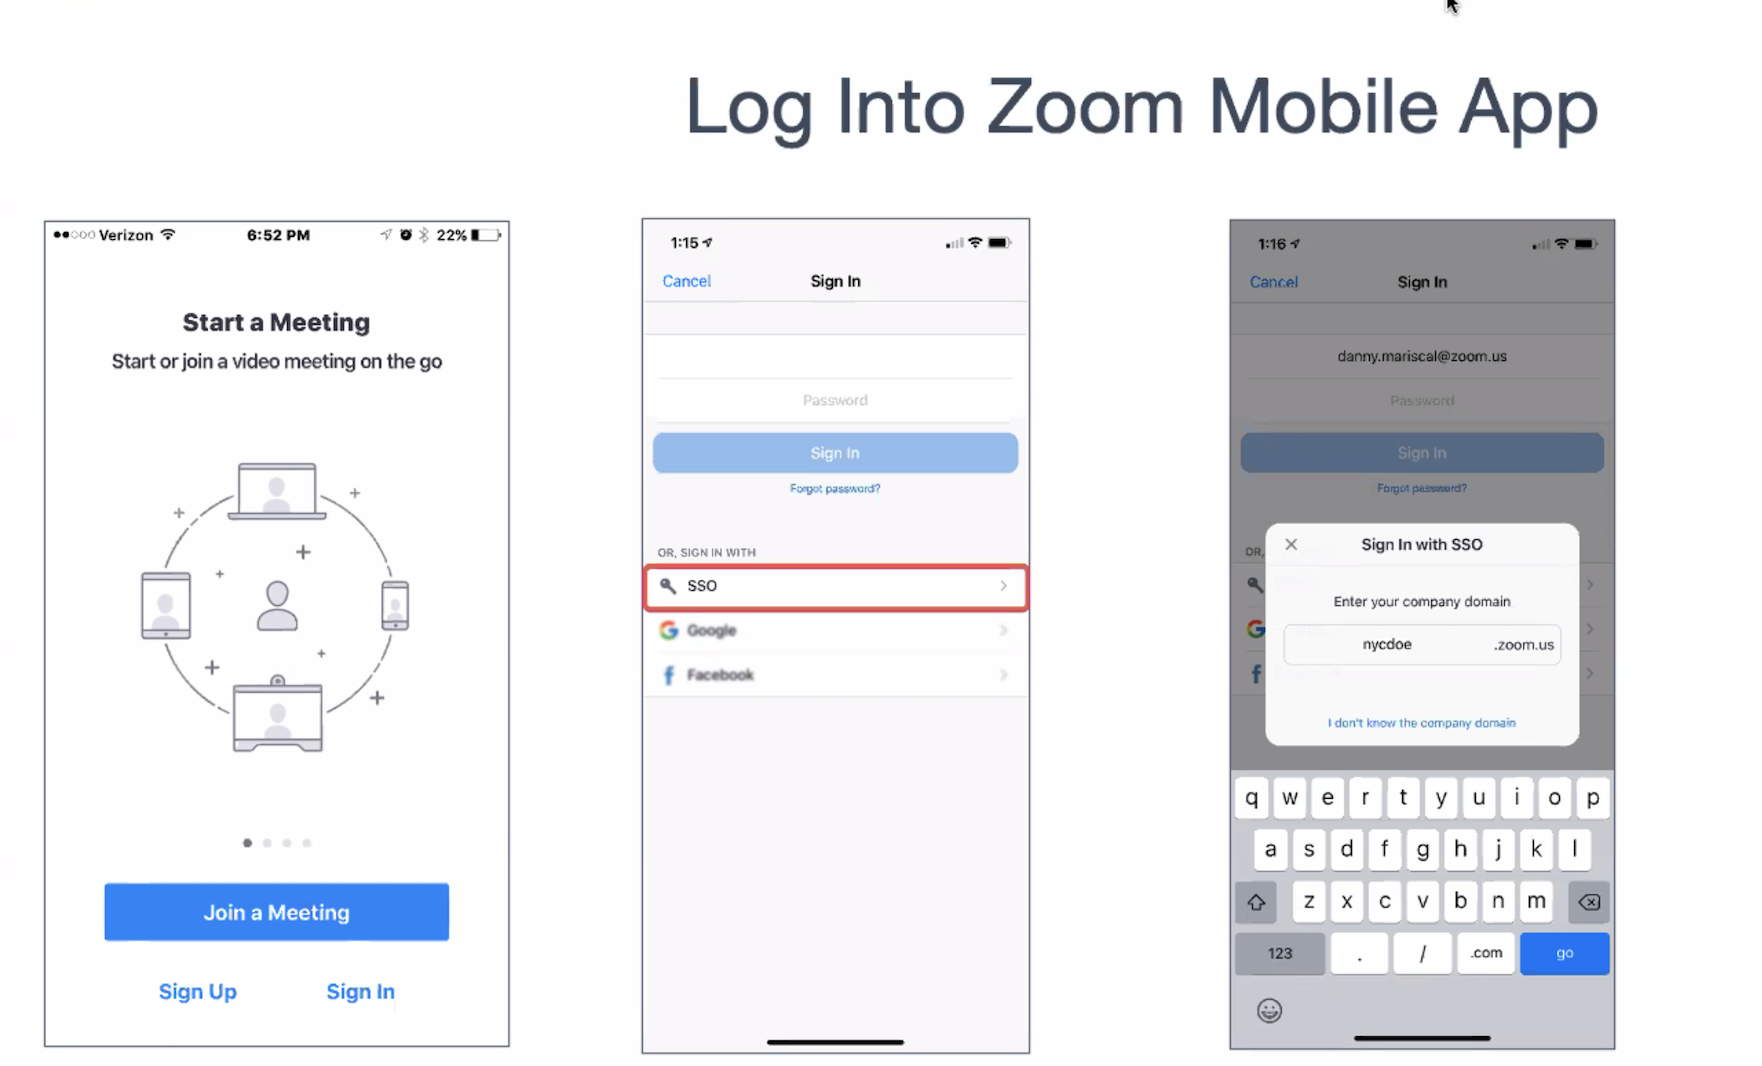 Login app instructions using SSO